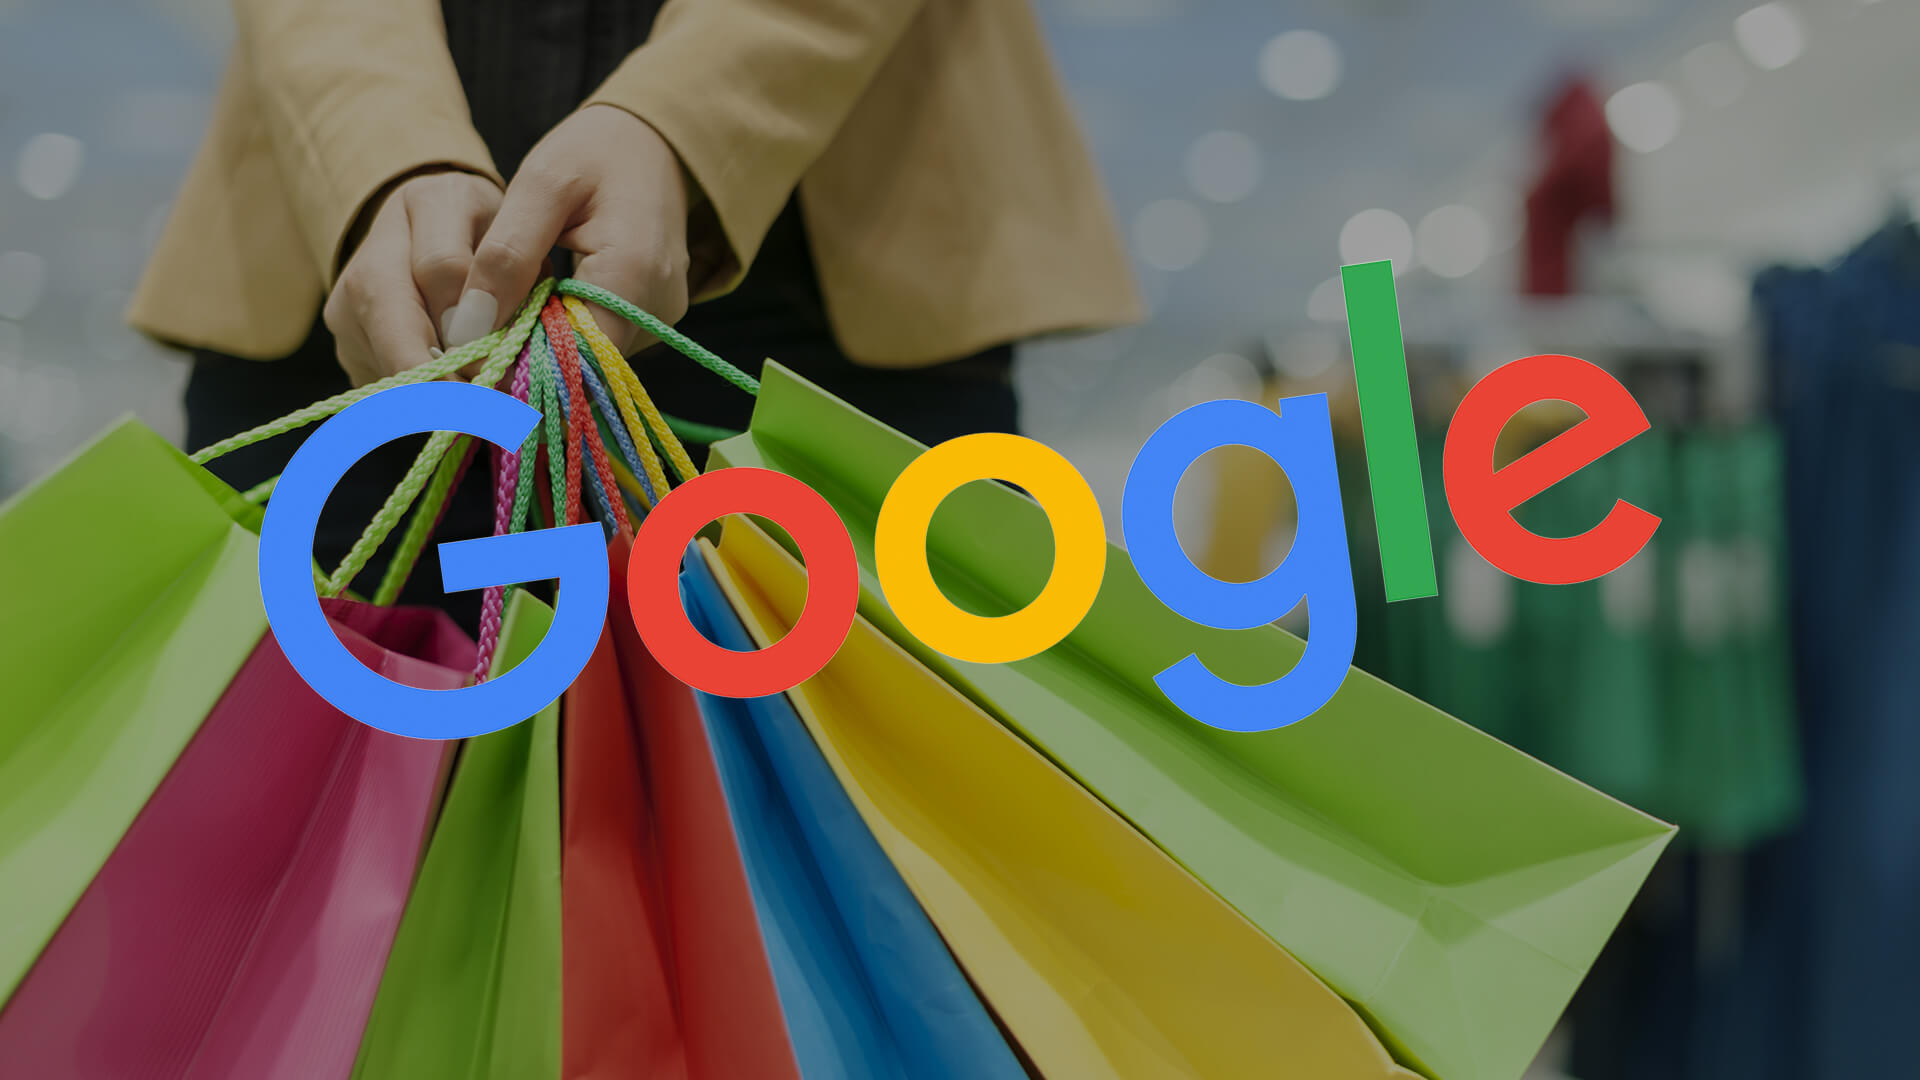 SEO - Google rolls out organic  'Popular Products' listings in mobile search results